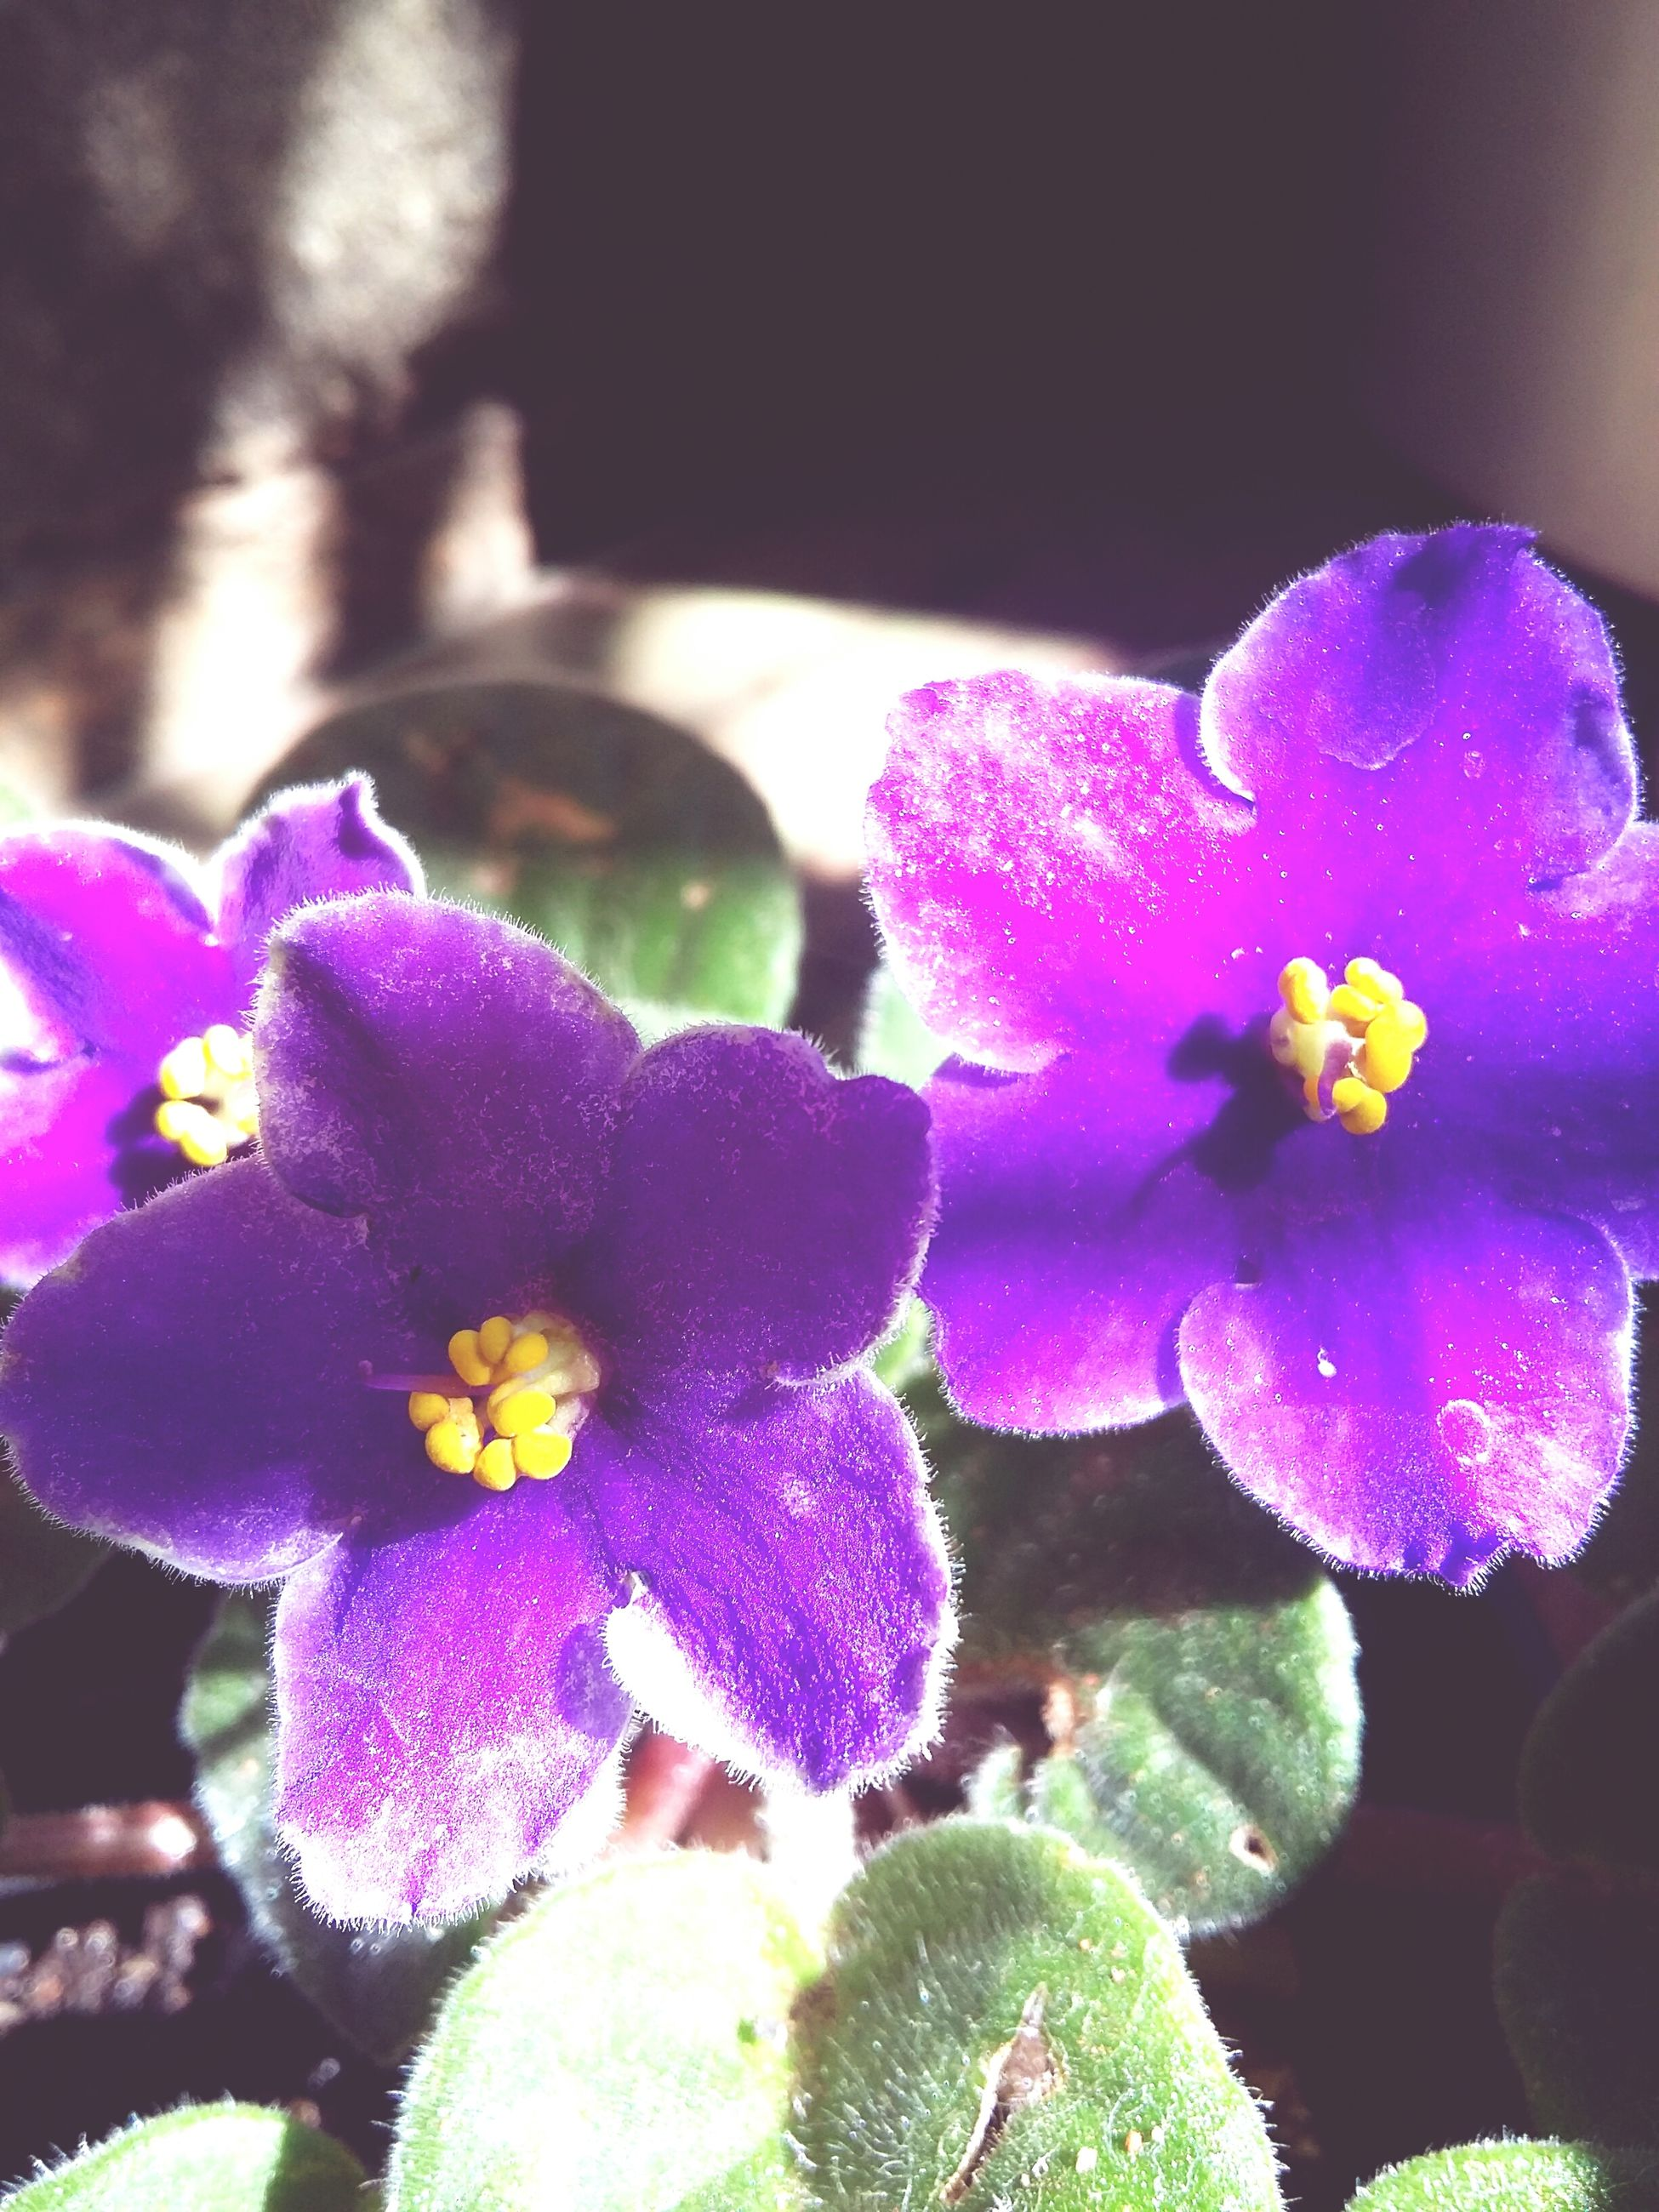 flower, fragility, petal, beauty in nature, growth, nature, freshness, plant, day, flower head, purple, no people, outdoors, close-up, blooming